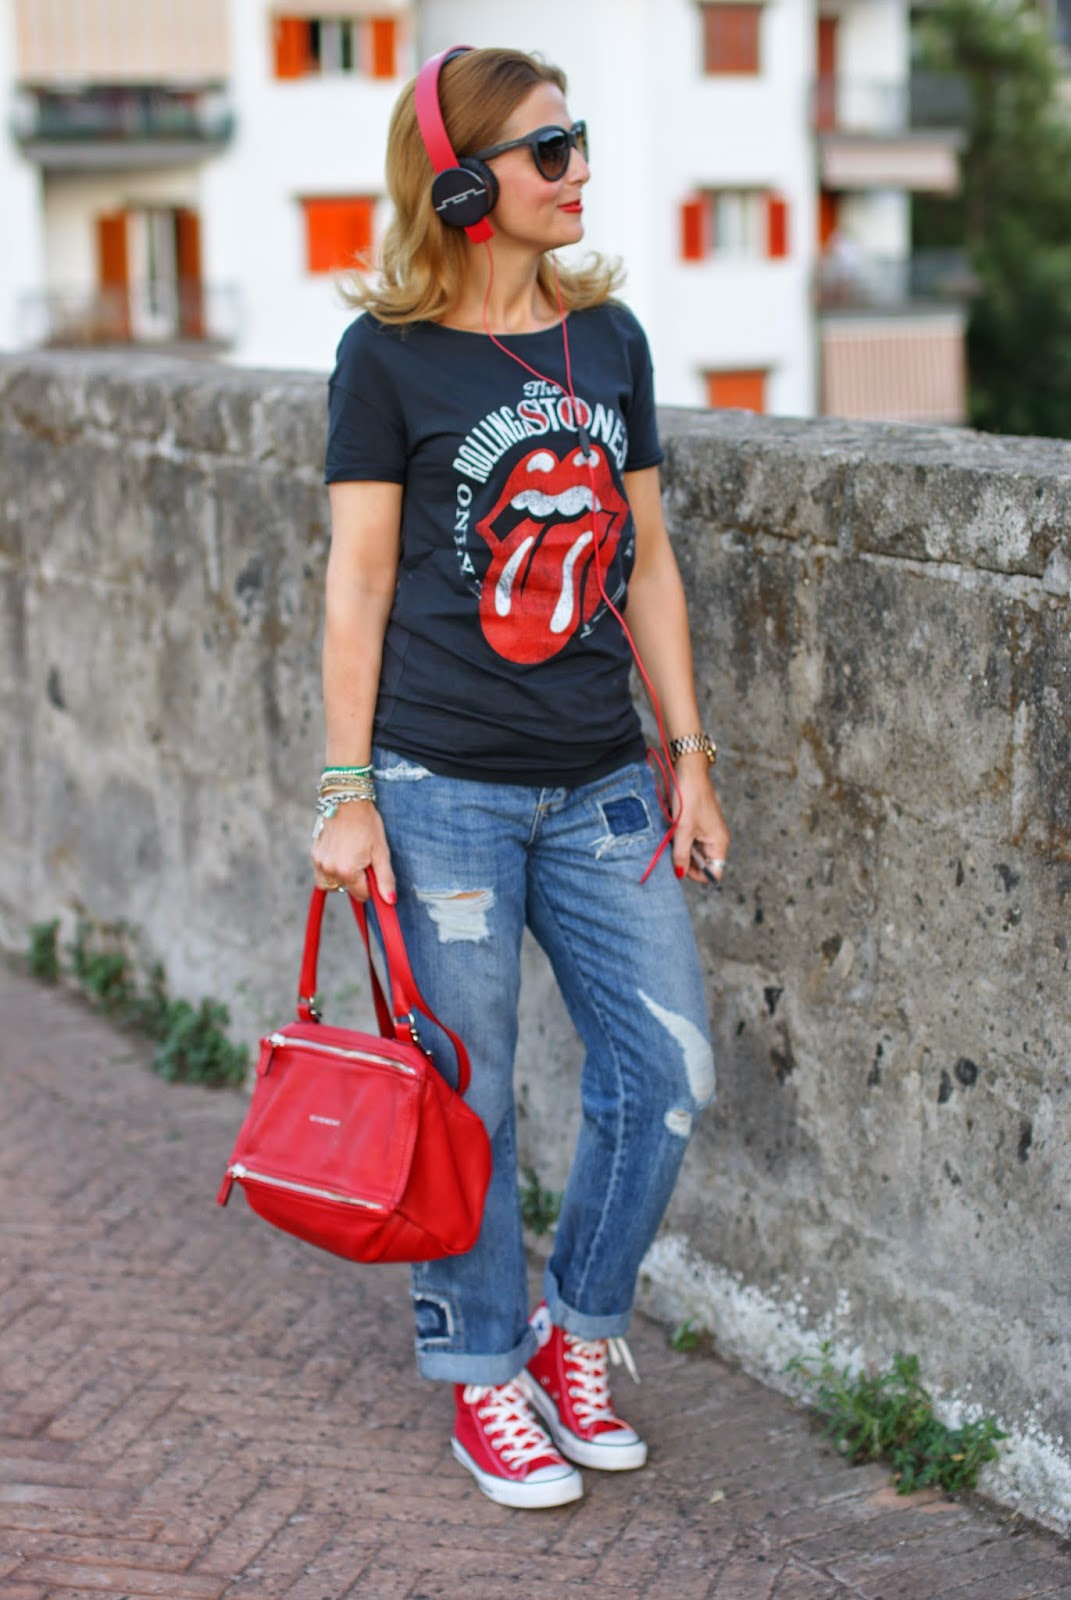 Givenchy red Pandora bag, Rolling Stones tee, red converse shoes, Fashion and Cookies, fashion blogger